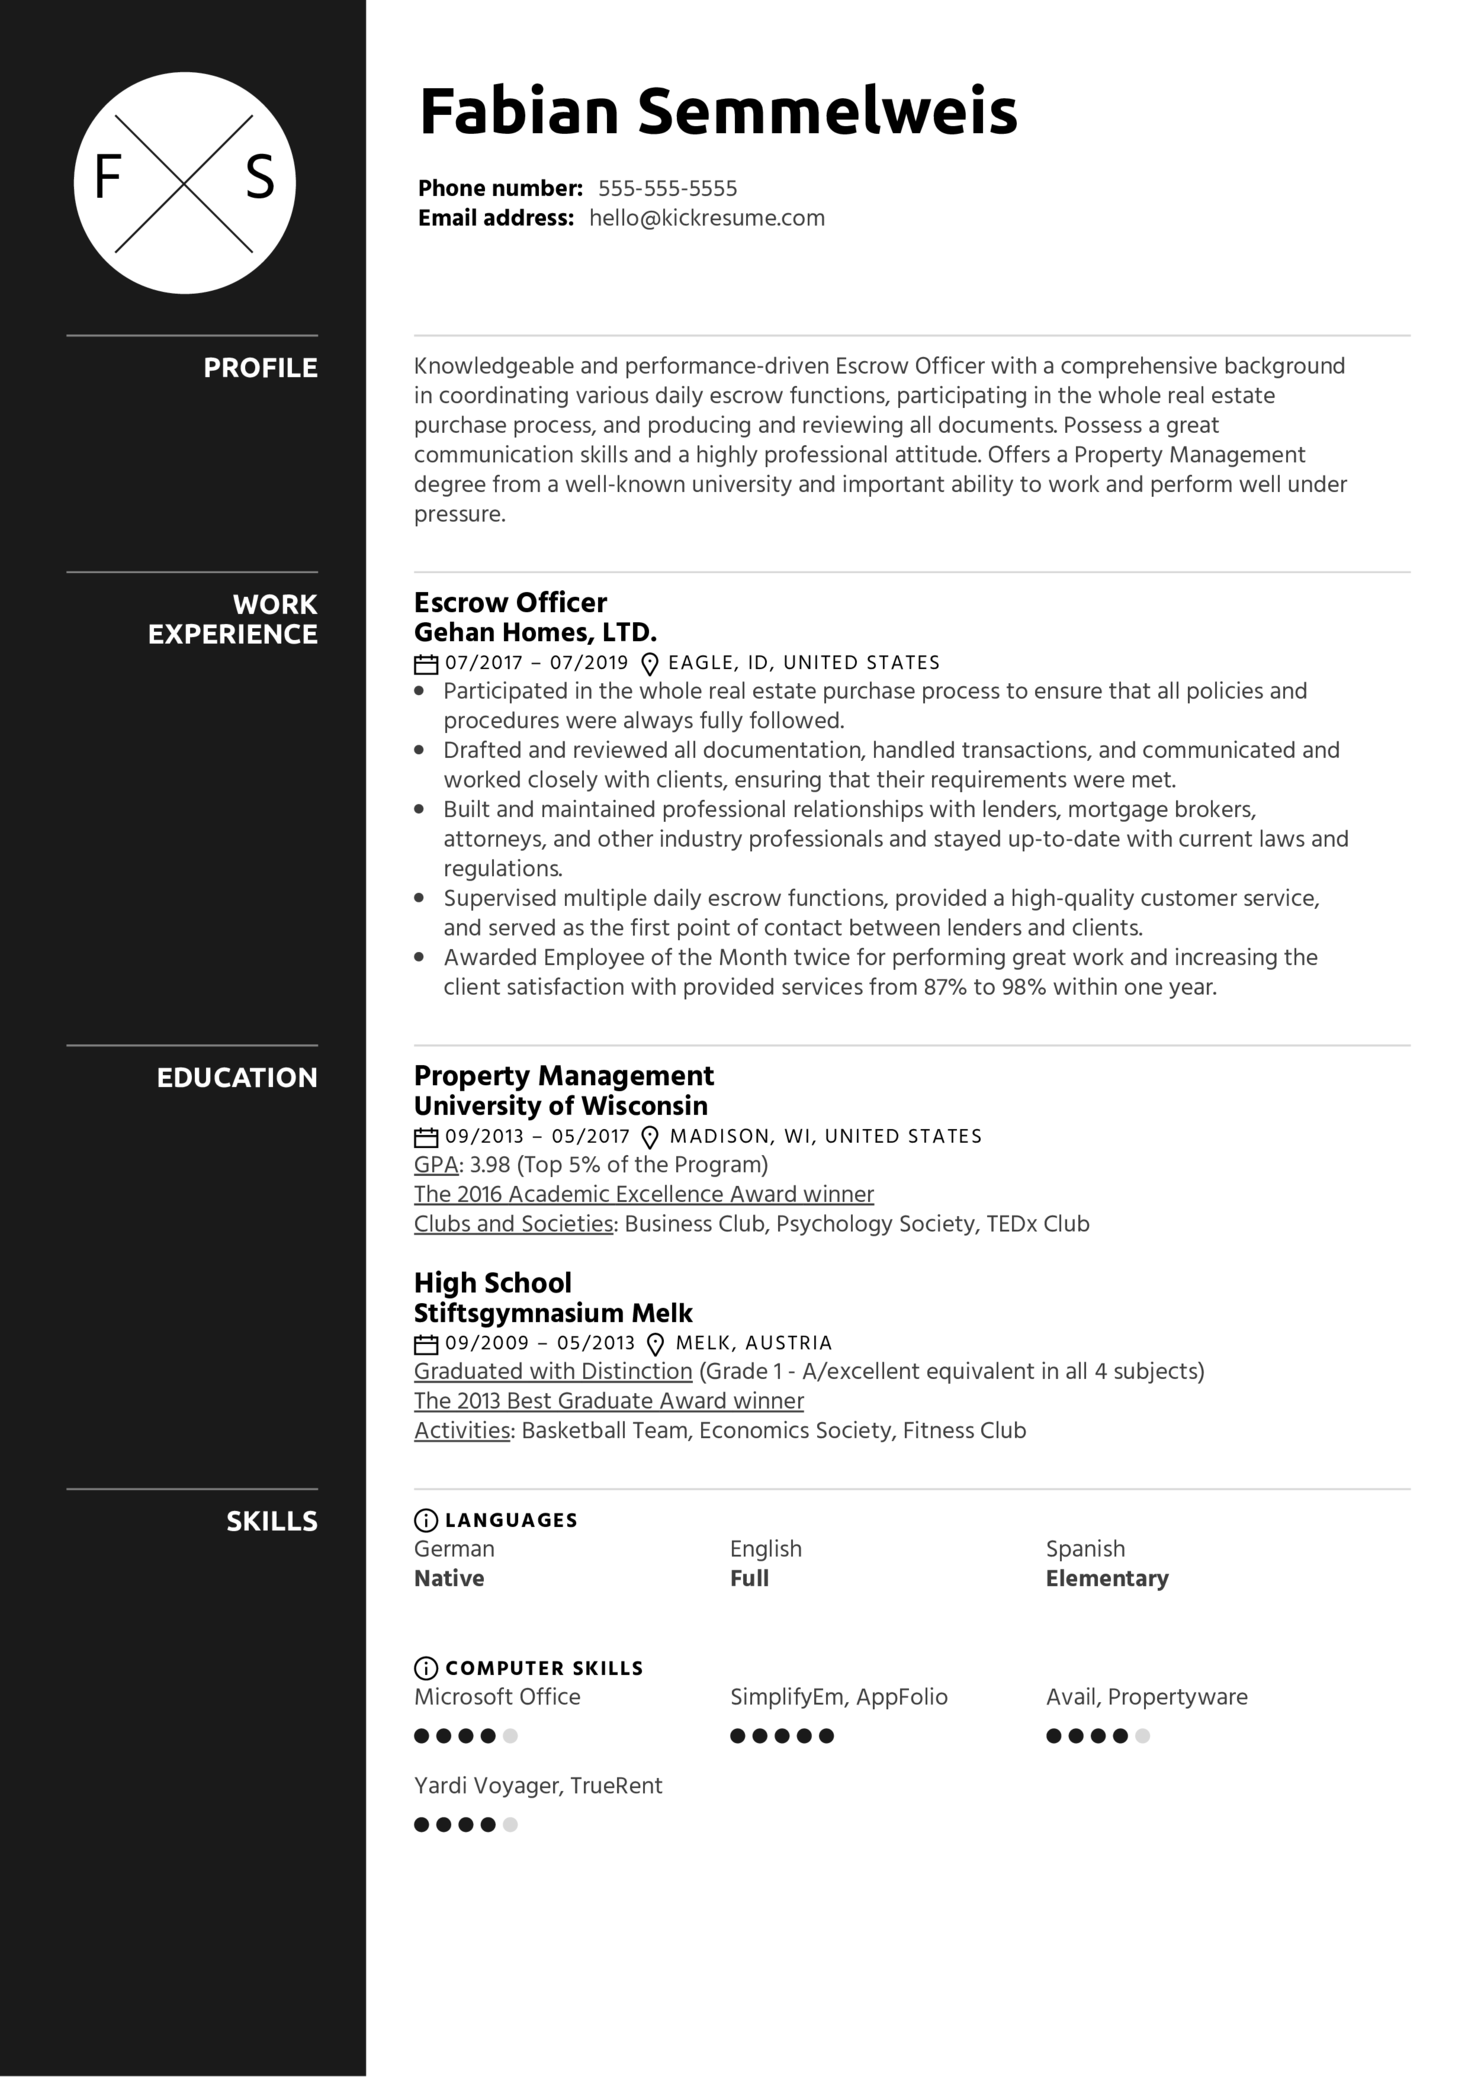 Escrow Officer Resume Sample (Part 1)